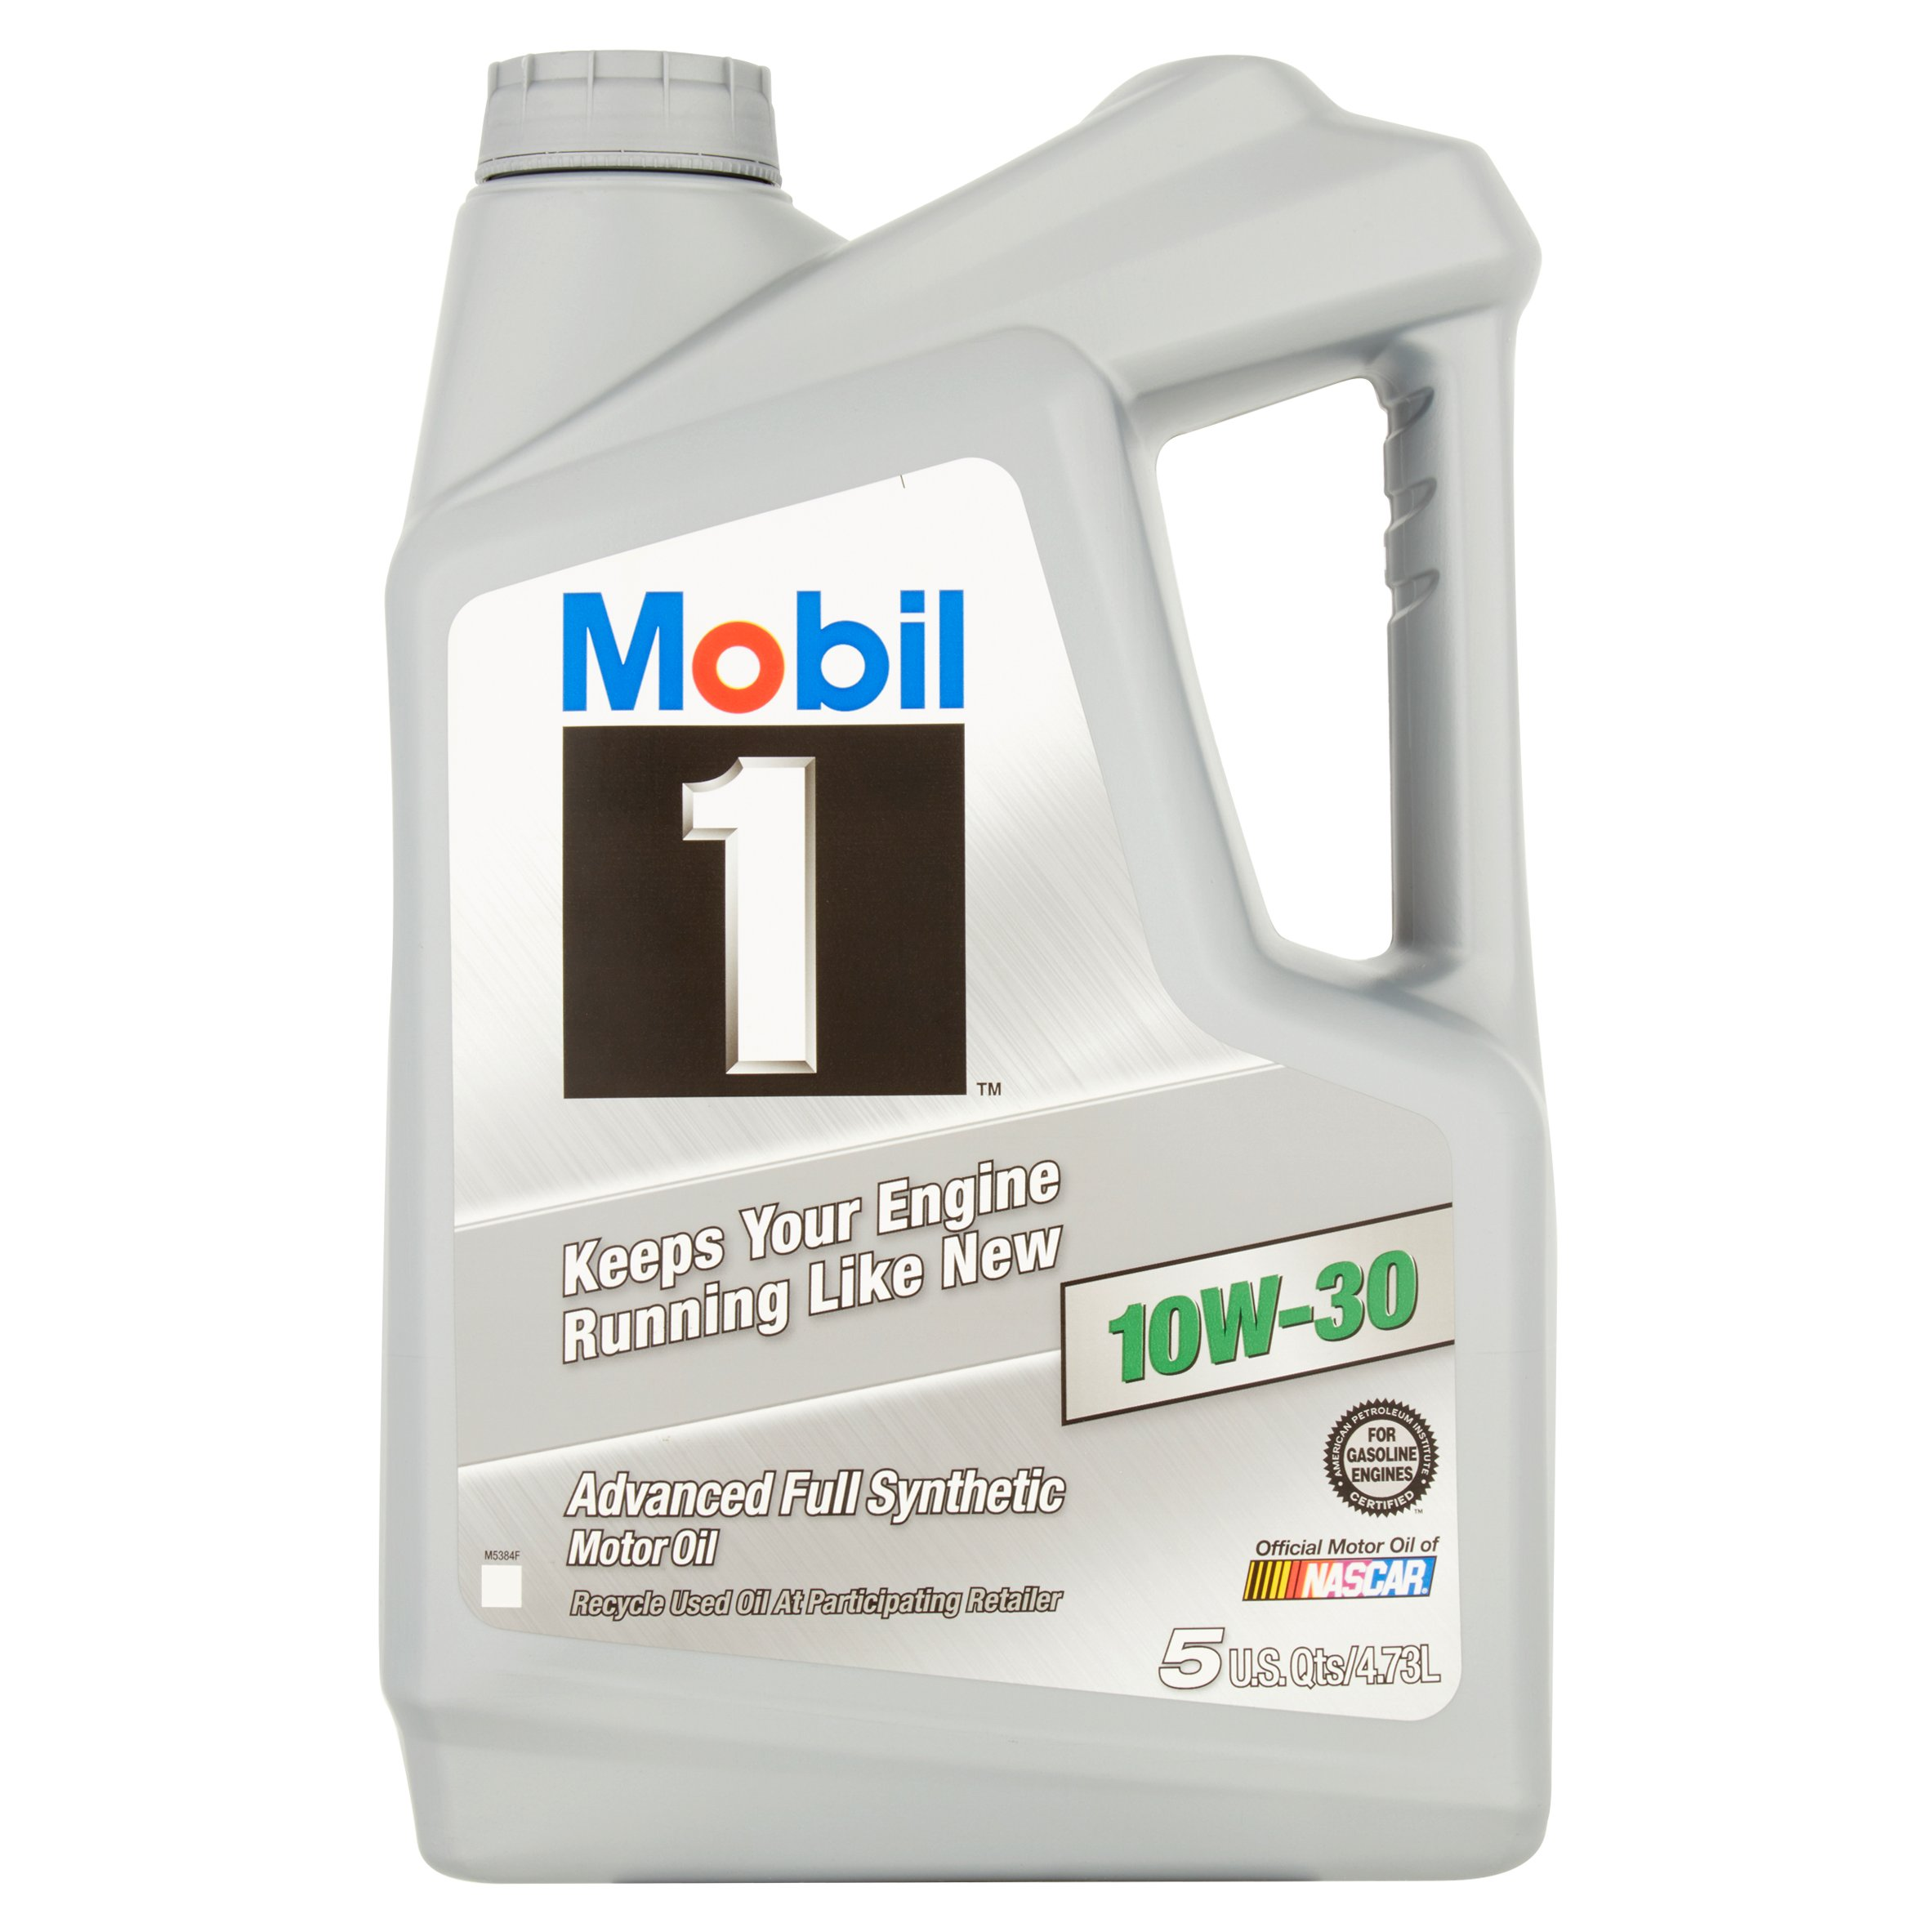 Mobil 1 10W-30 Advanced Full Synthetic Motor Oil, 5 qts